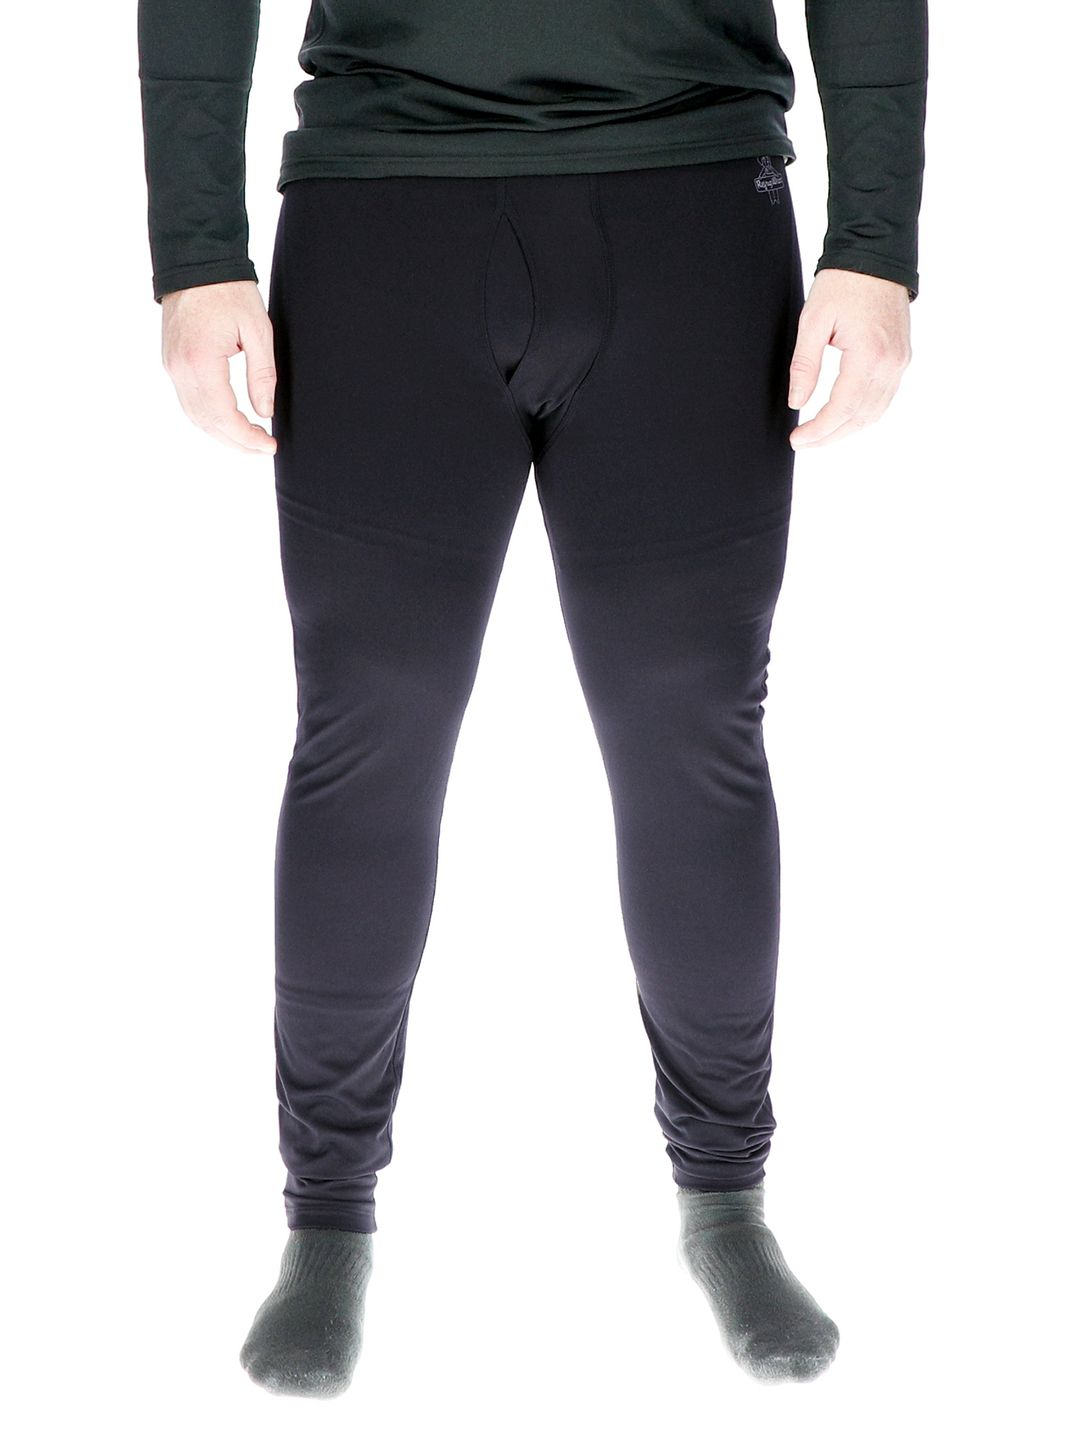 refrigiwear-088B-cold-beather-base-layer-pants-front-view-bright-recolor.jpg